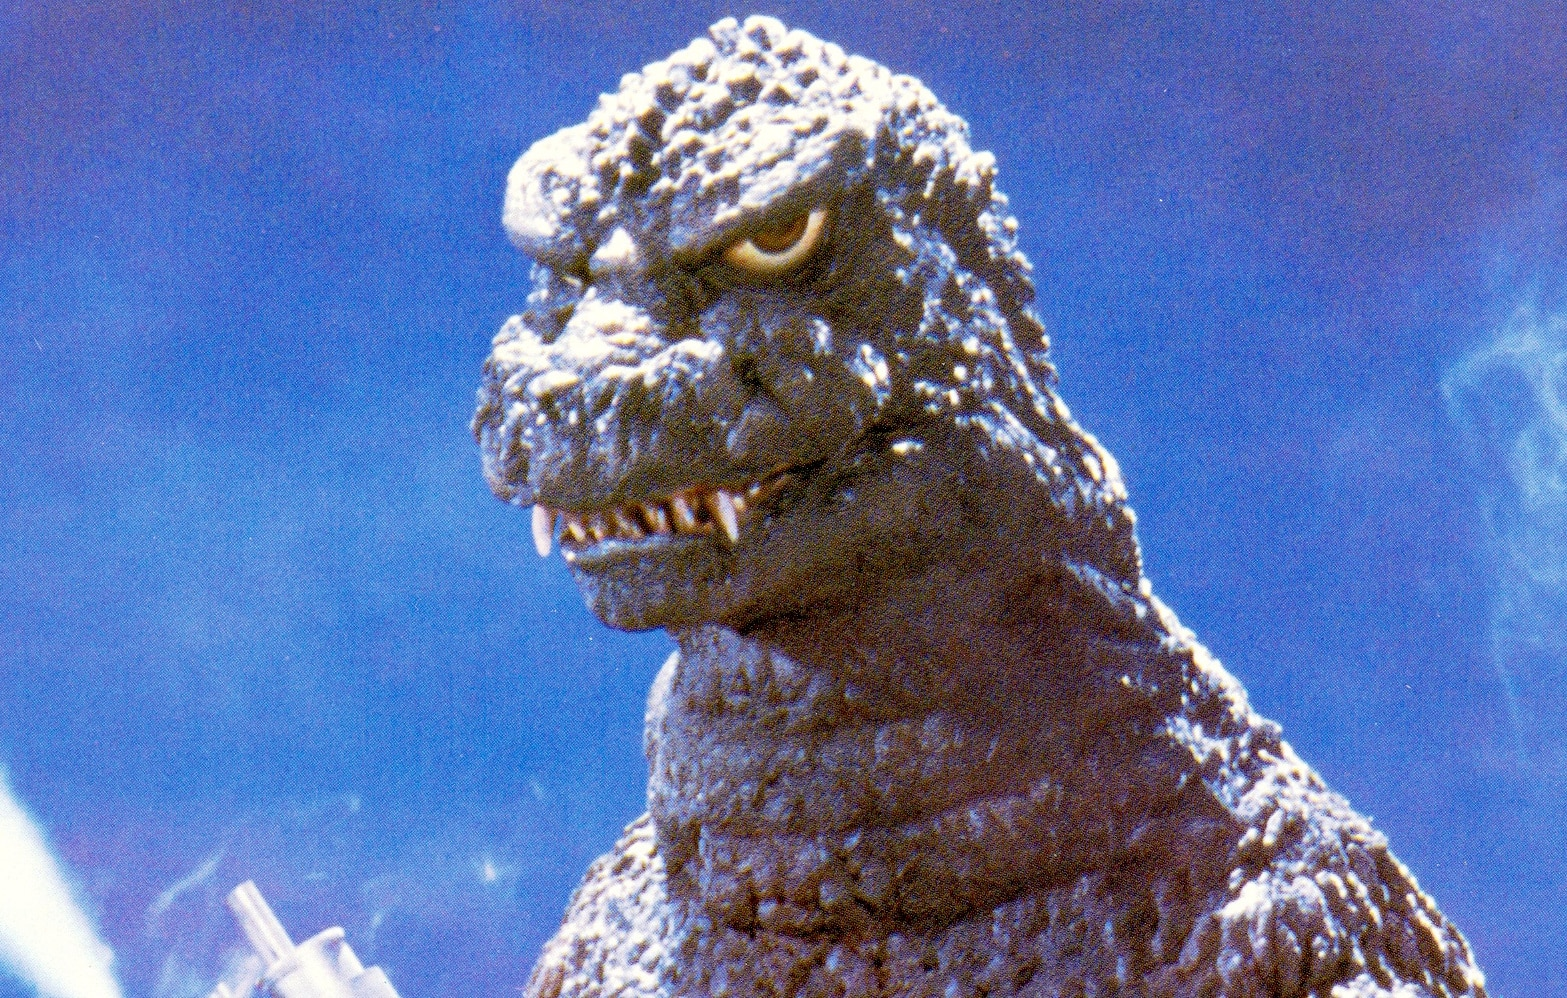 new japanese godzilla movie filming this weekend in tokyo